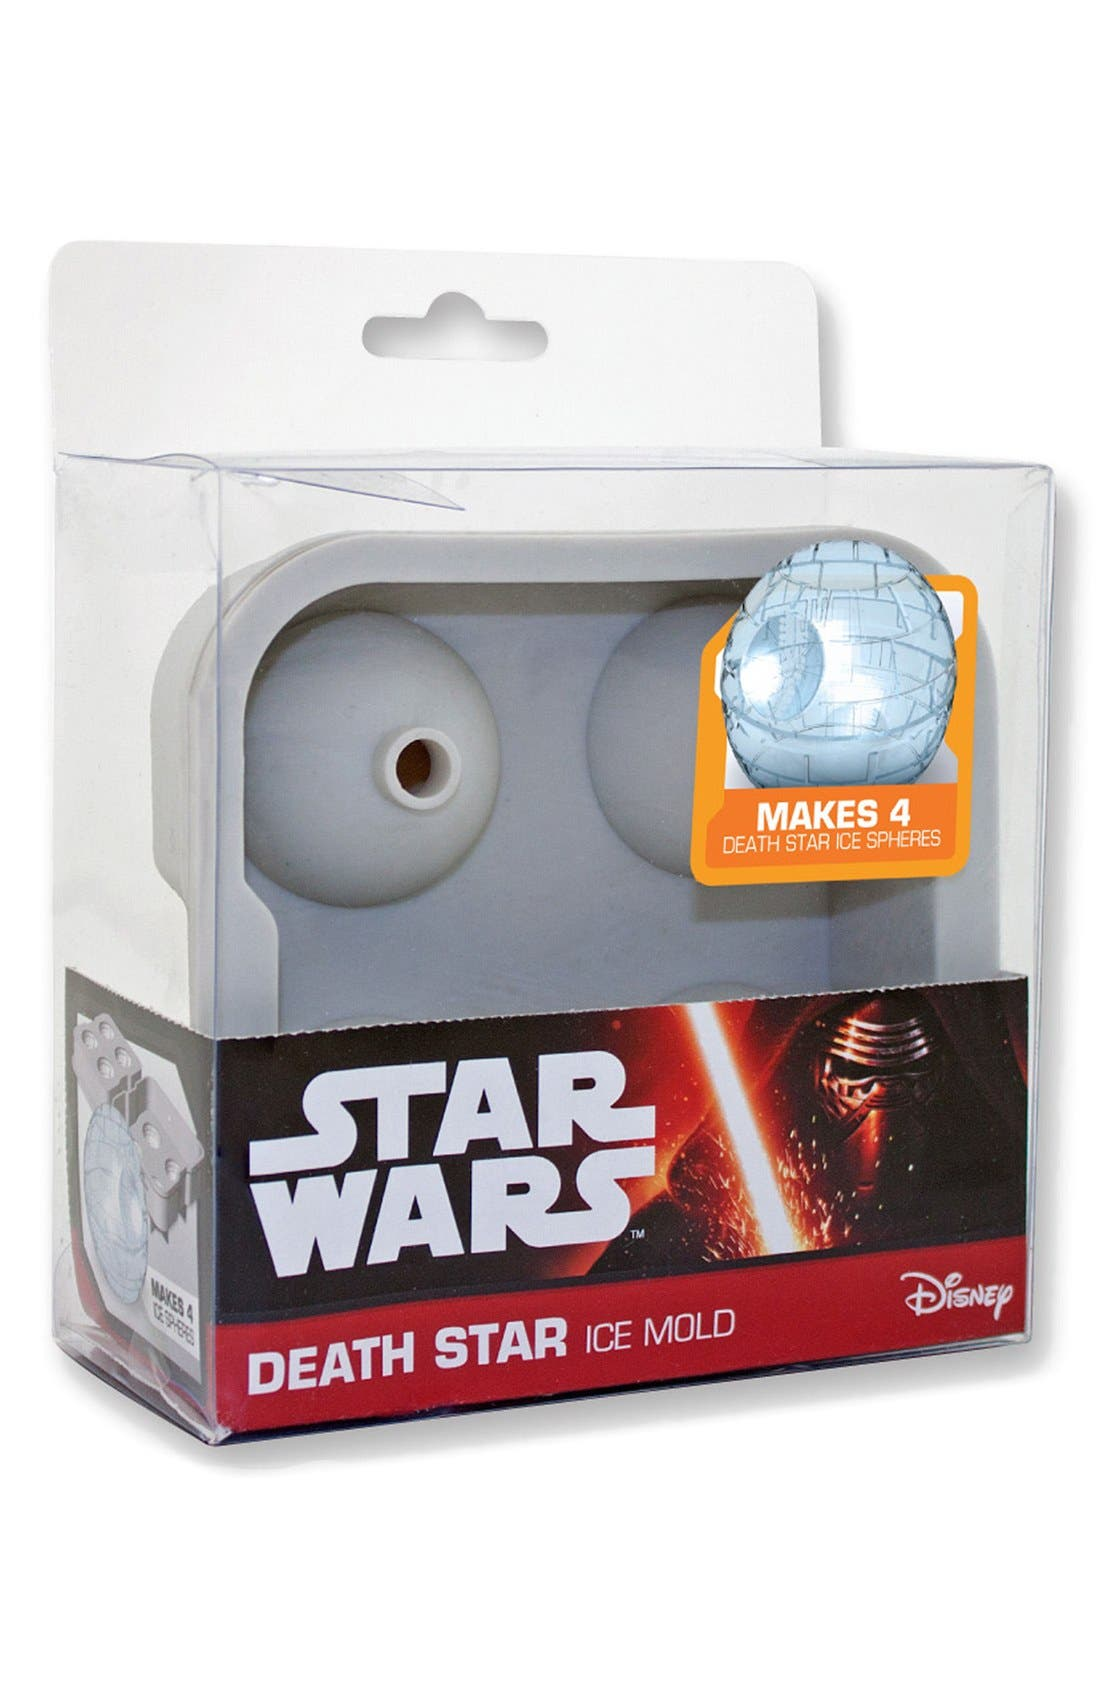 DC COMICS ICUP 'Star Wars - Death Star' Ice Mold, Main, color, 020